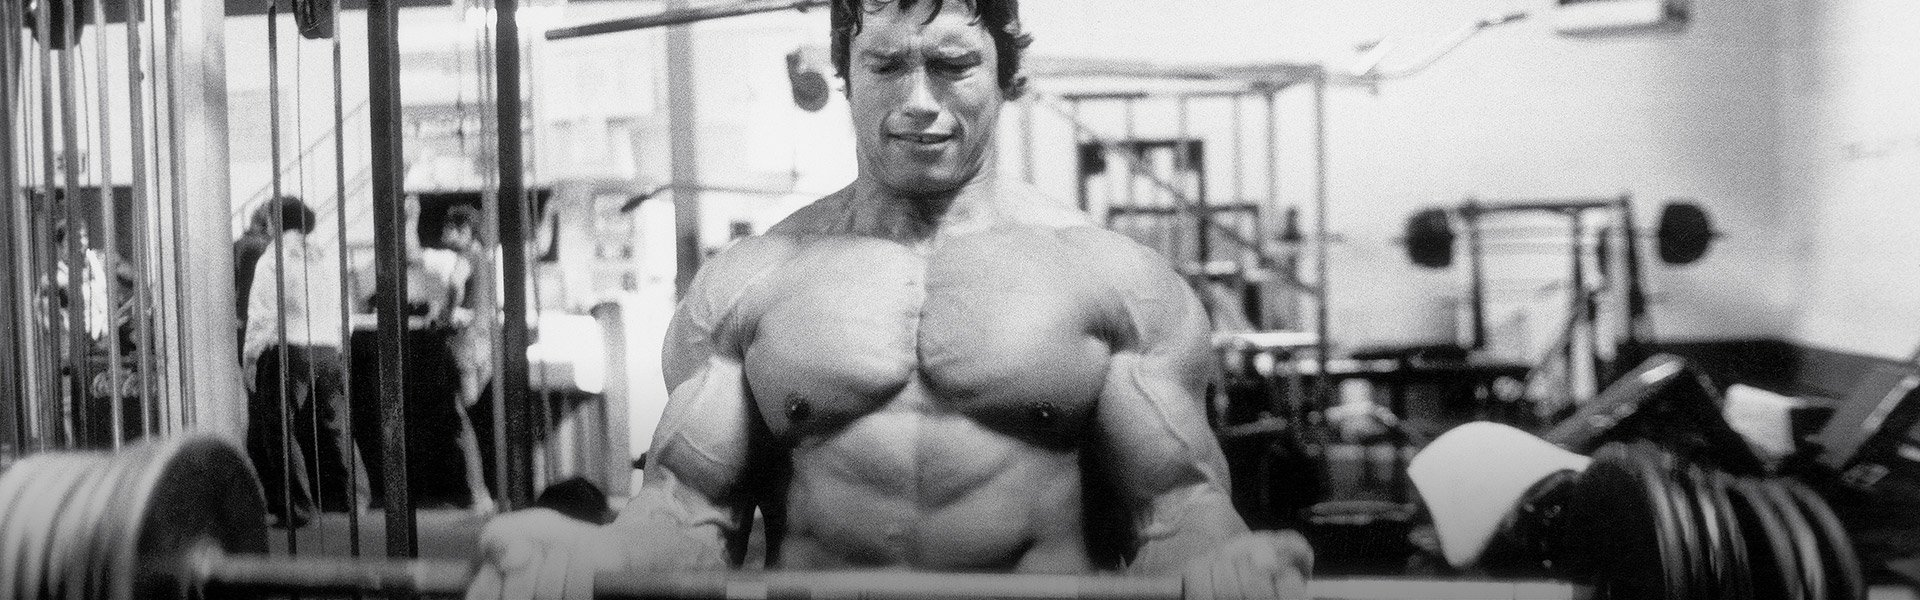 Arnold schwarzenegger blueprint trainer day 19 malvernweather Choice Image